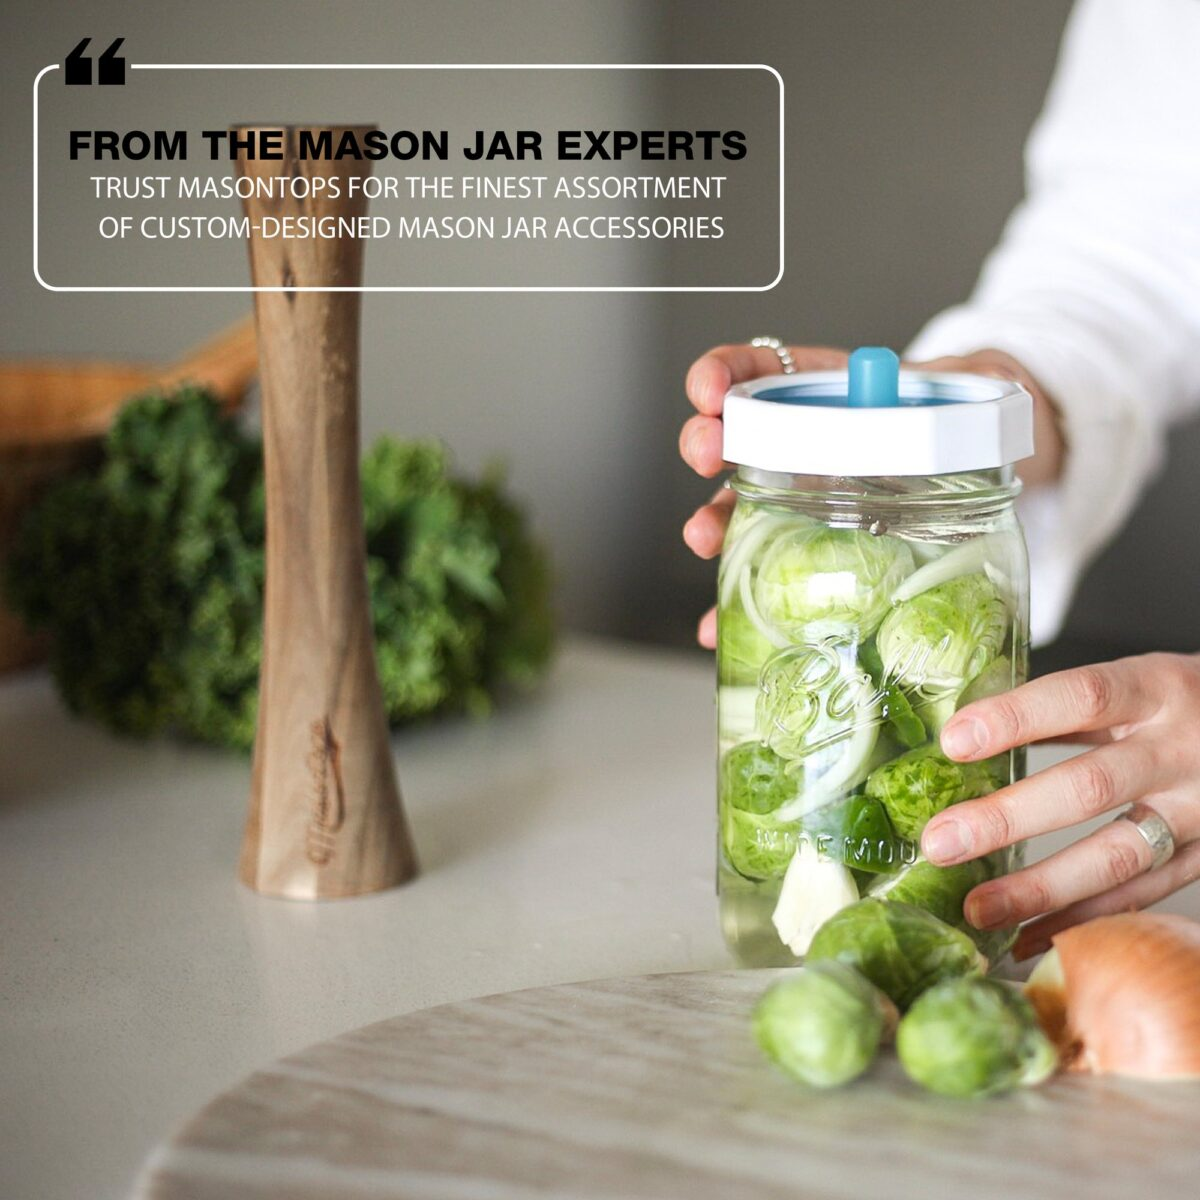 Pickling and fermenting is easy with these simple silicone air locks on mason jars